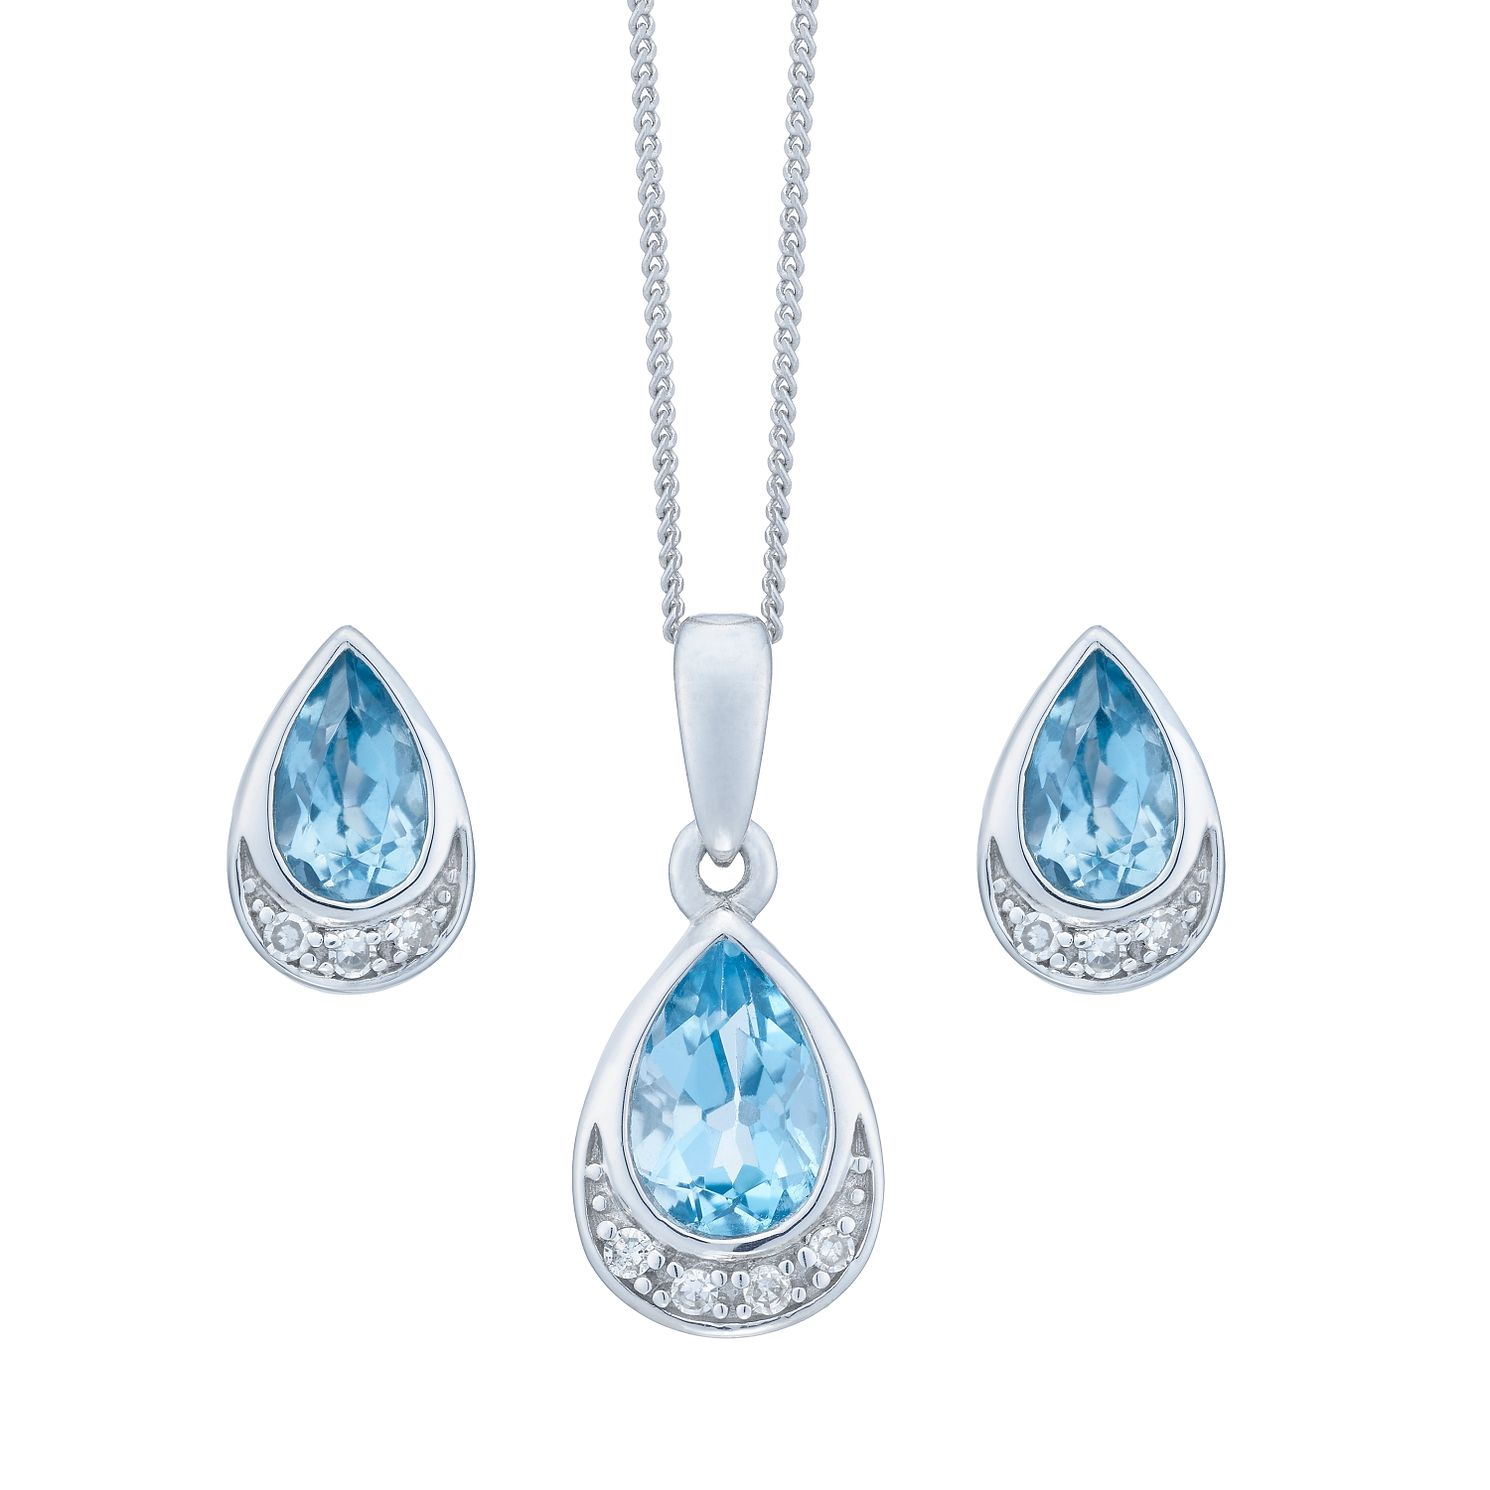 9ct White Gold Blue Topaz And Diamond Jewellery Set - Product number 8147345